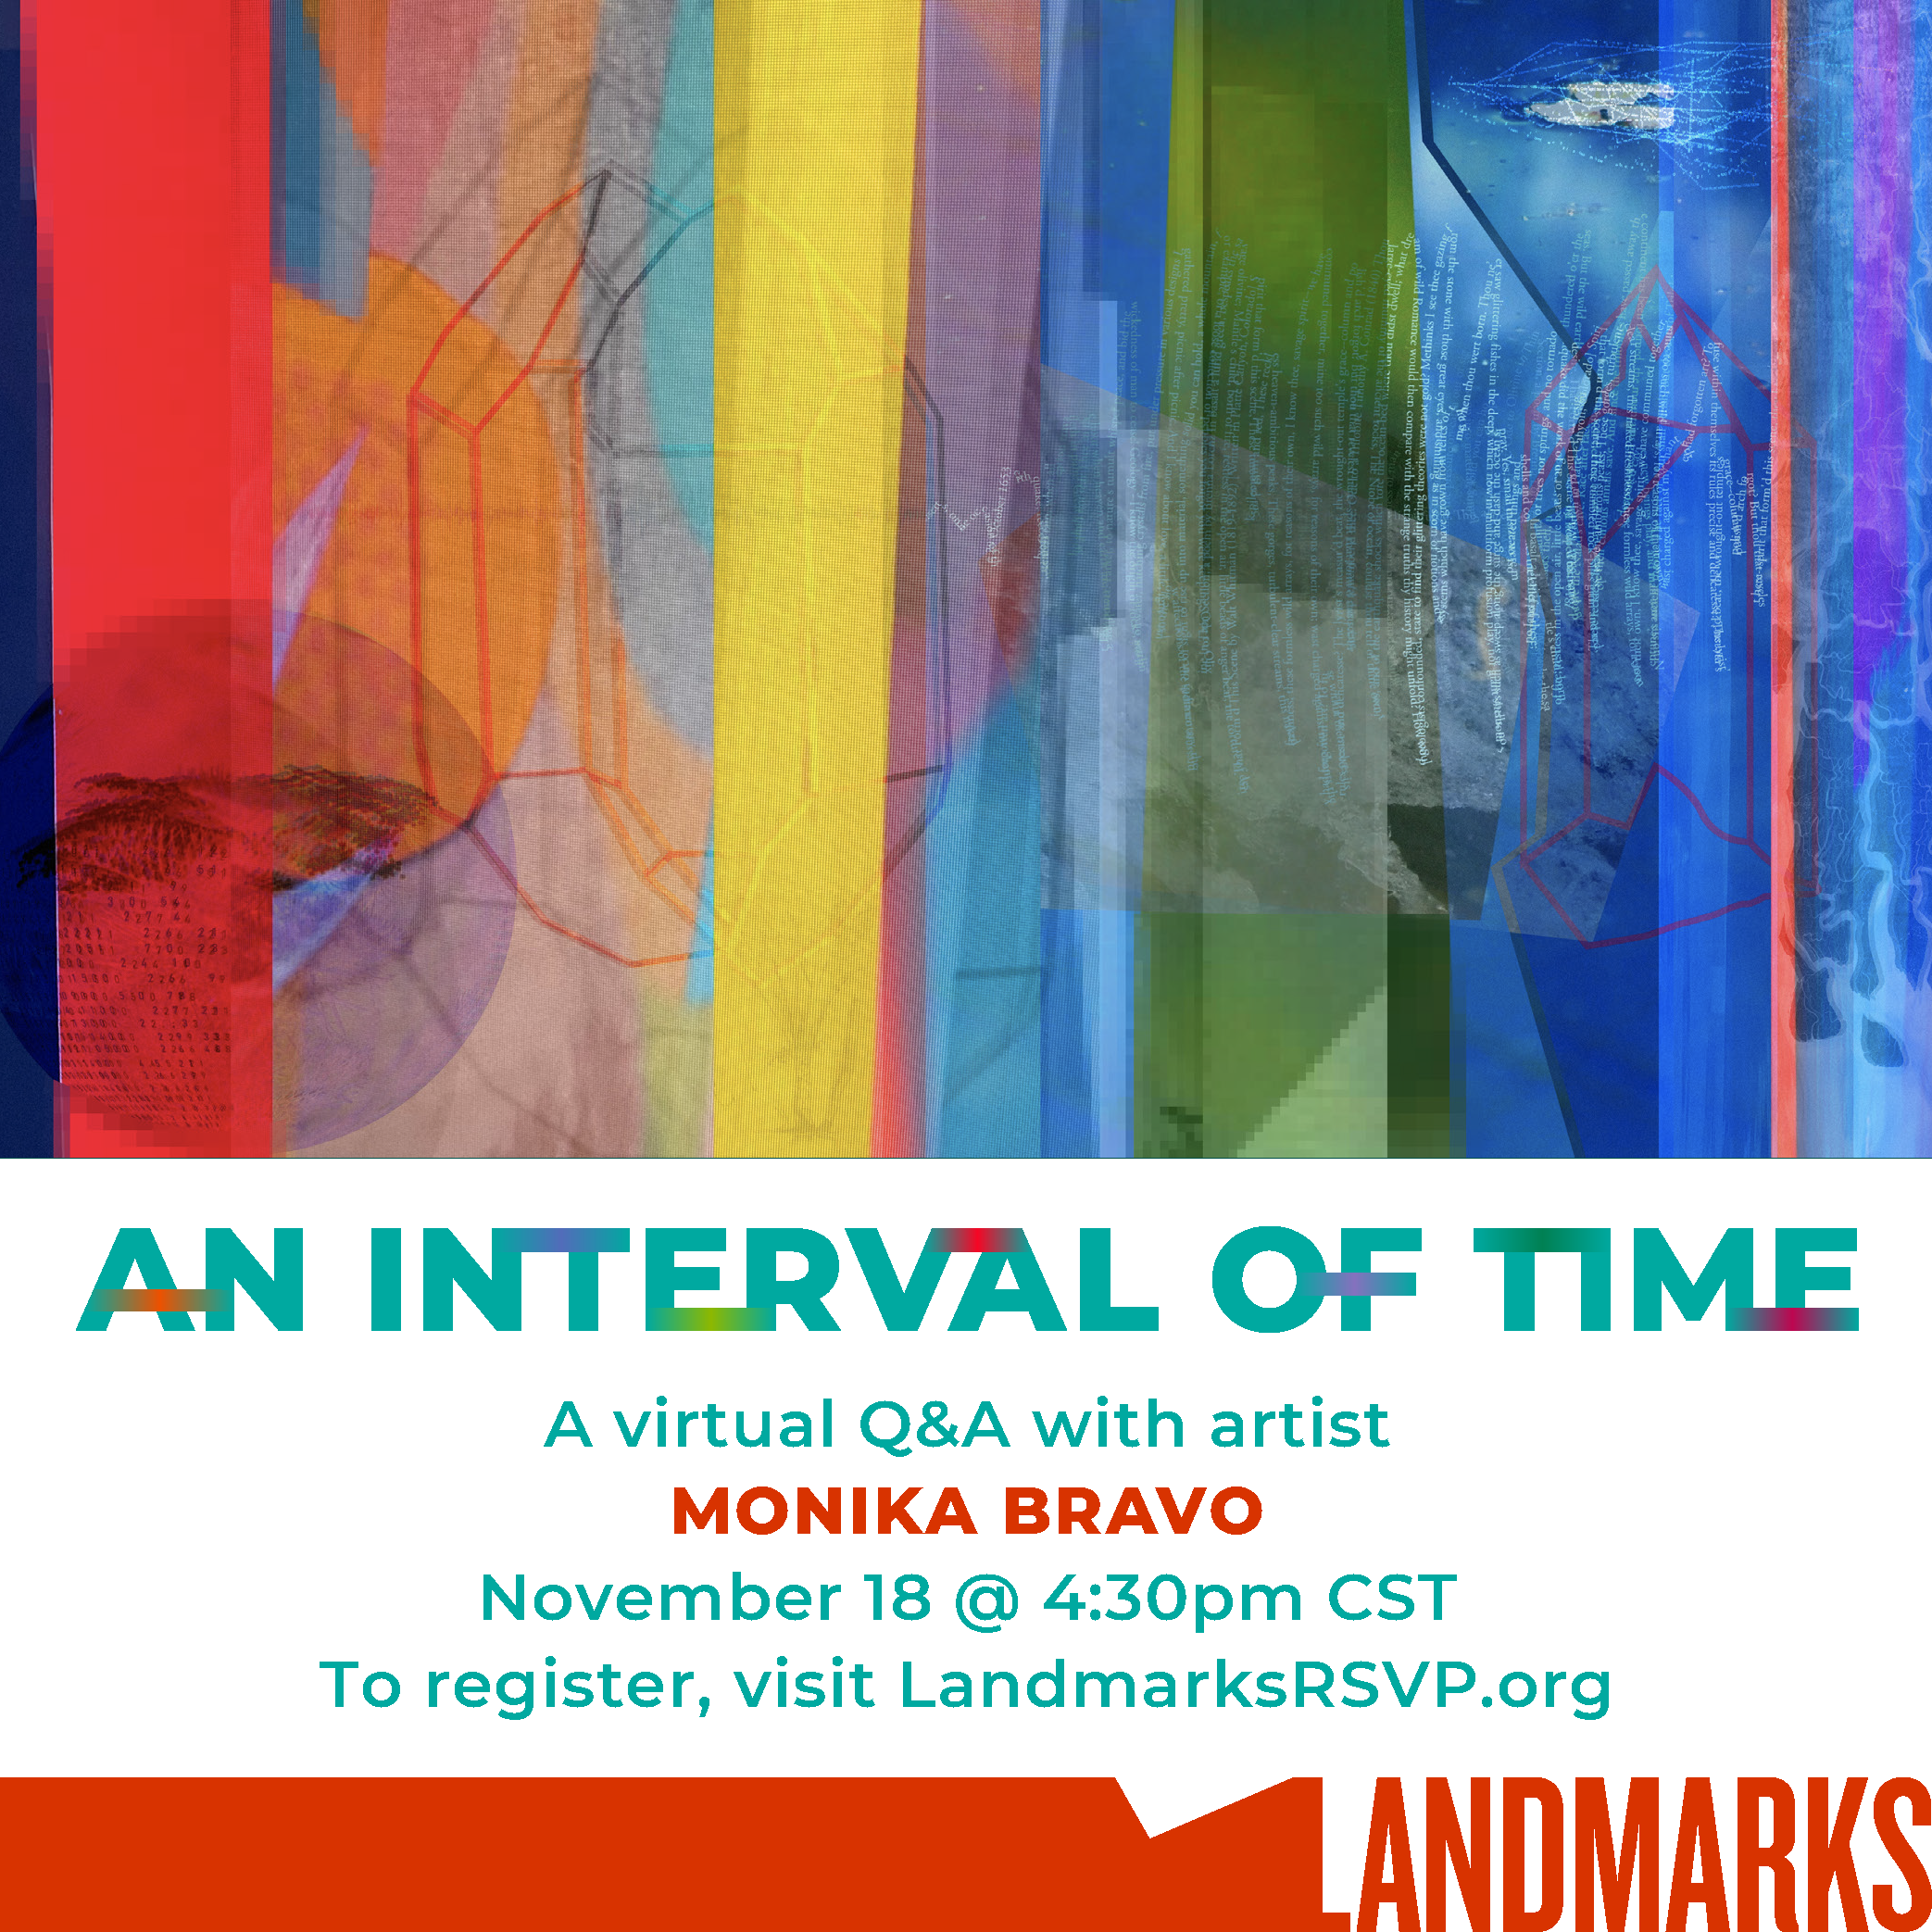 Celebrating An Interval of Time: A Virtual Q&A with Monika Bravo